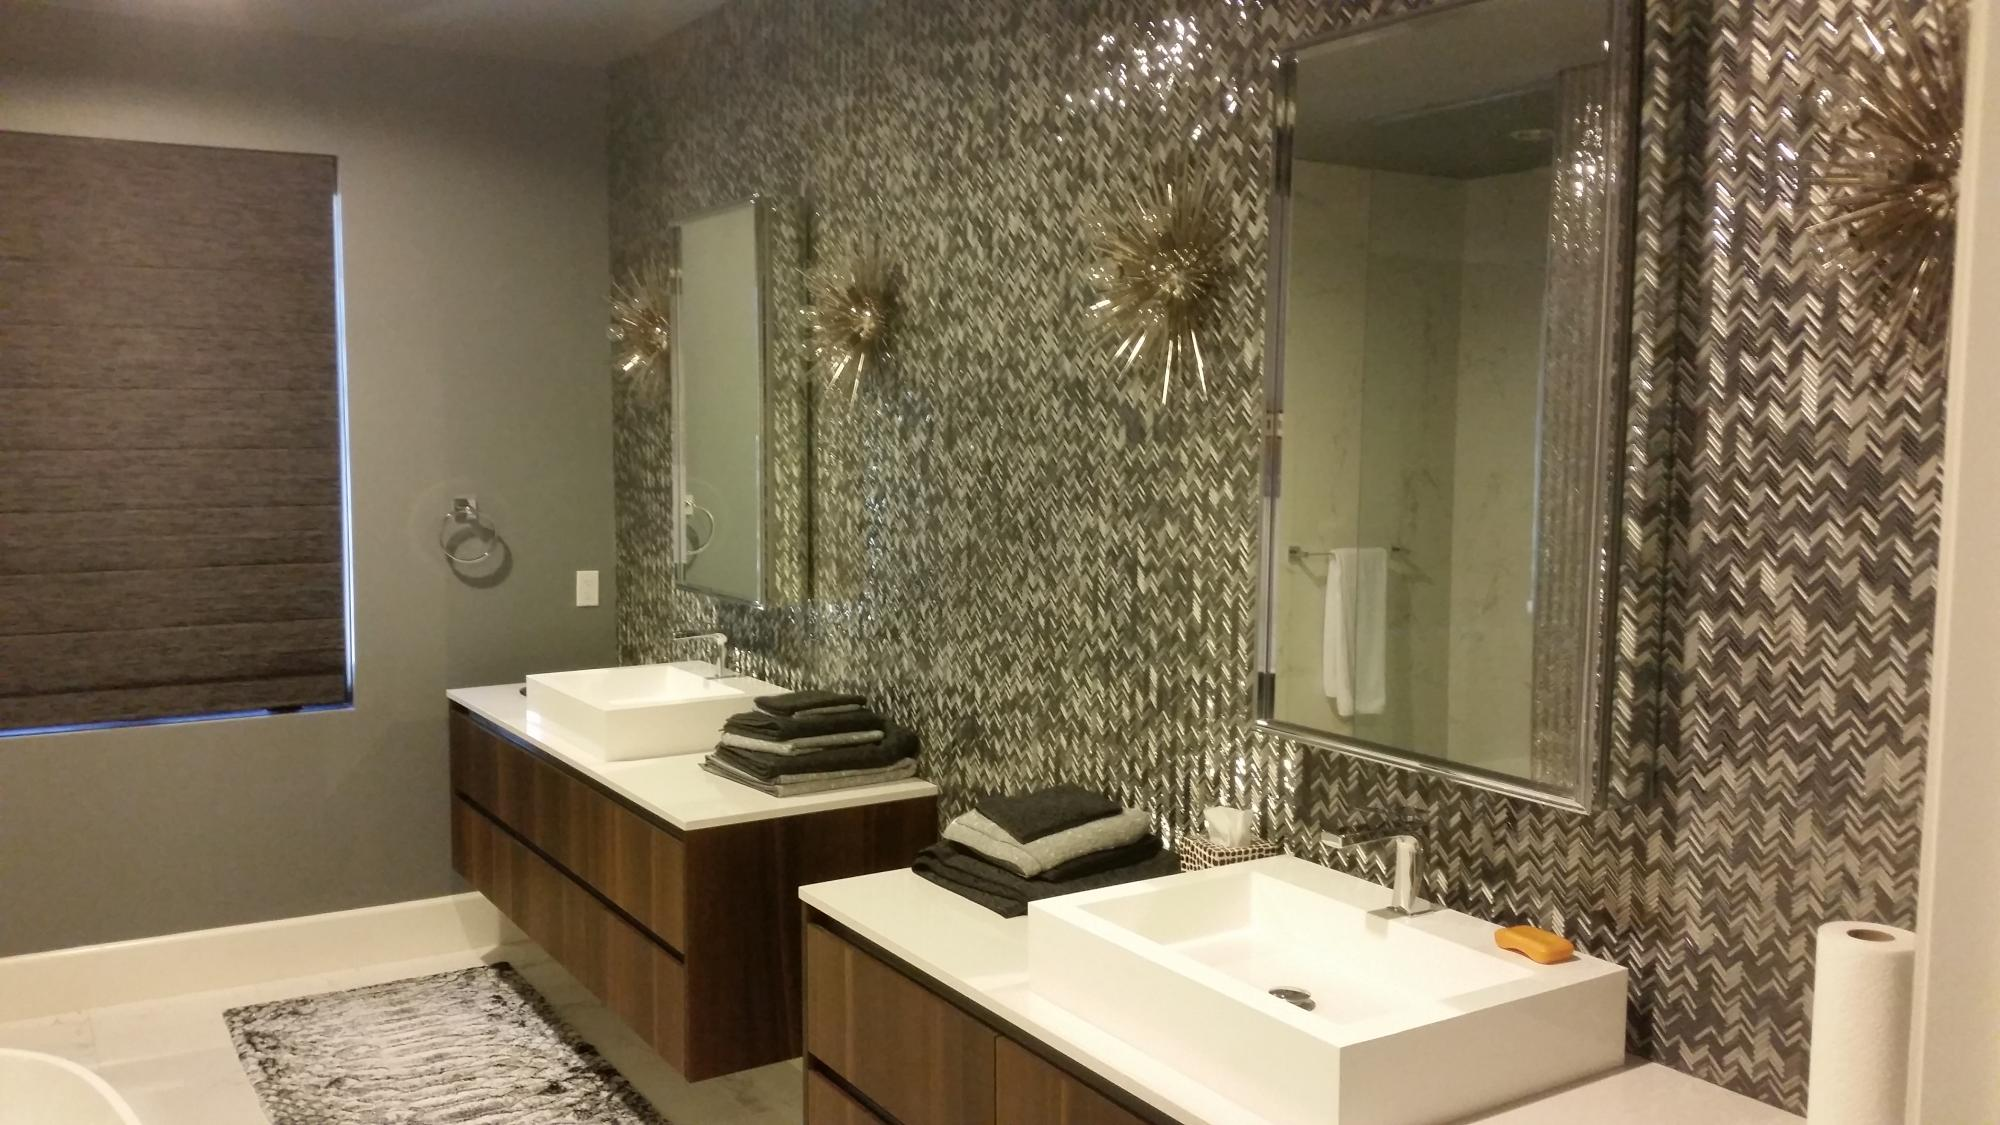 Electrical Repairs Residential Electrician Electrical Contractor - Bathroom remodel palm desert ca